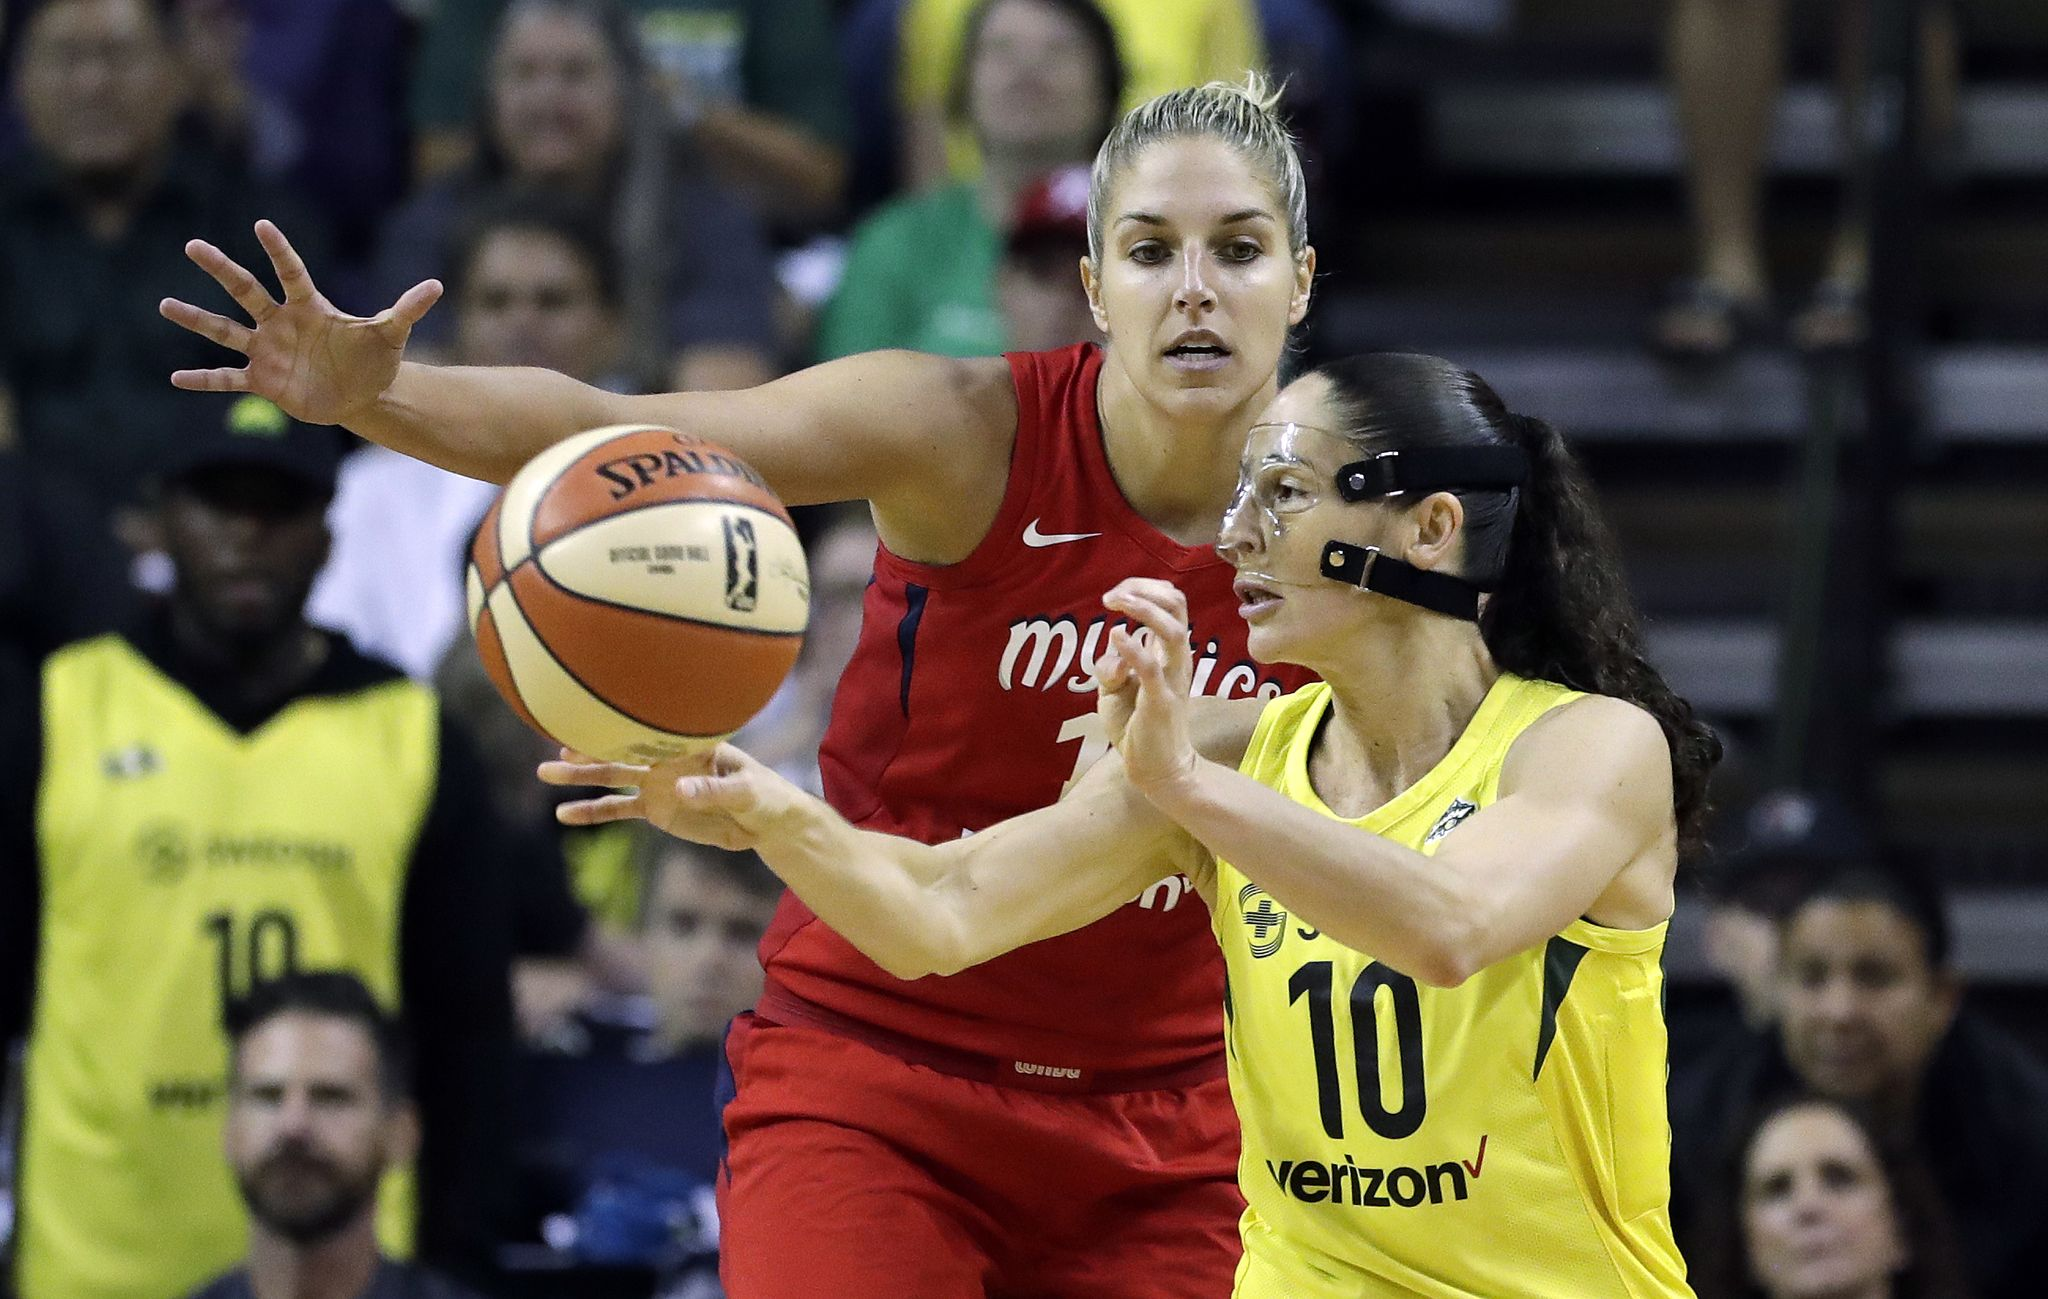 Elena Delle Donne named to U.S. roster for FIBA Women's World Cup - Washington Times